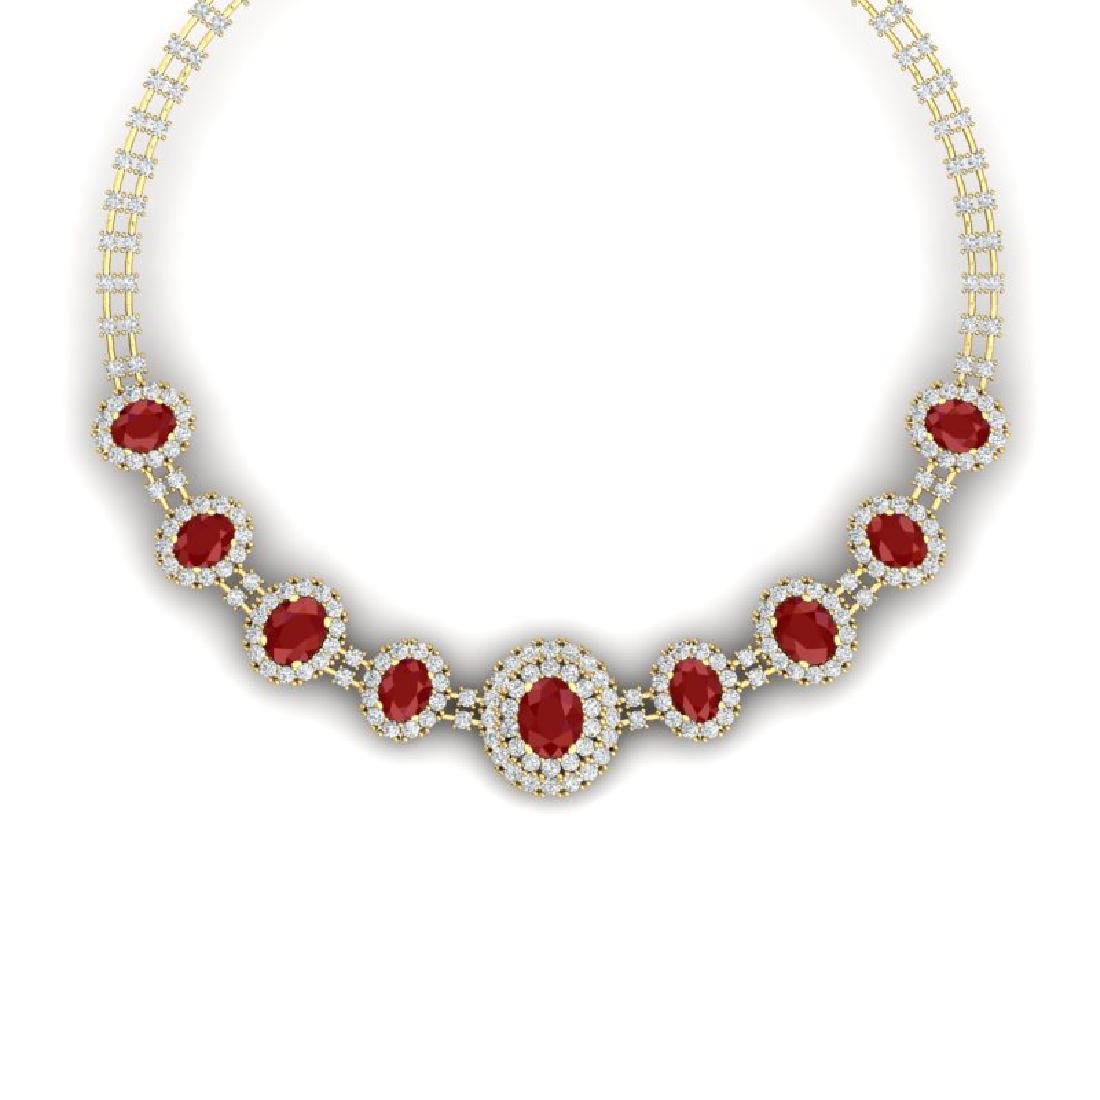 45.69 CTW Royalty Ruby & VS Diamond Necklace 18K Yellow